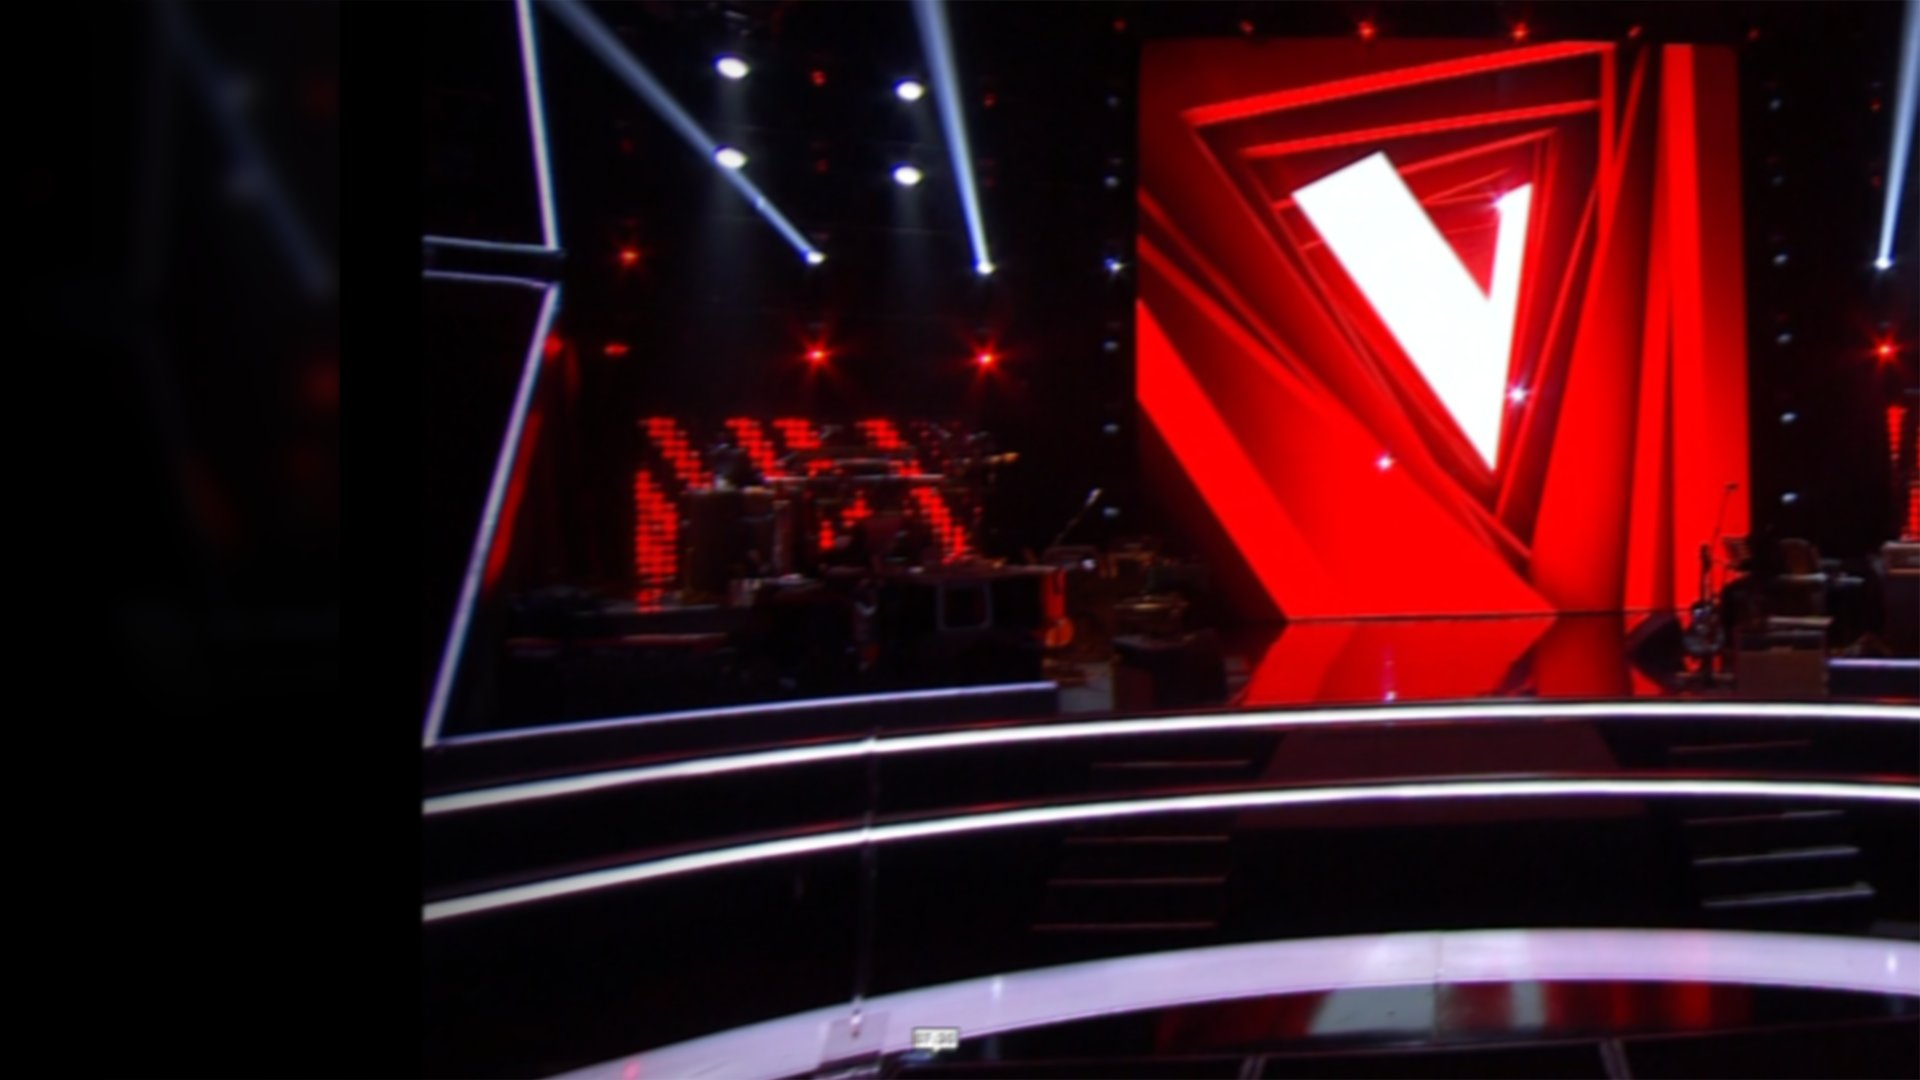 fond The Voice 2021 - Le récap de la Team Florent Pagny